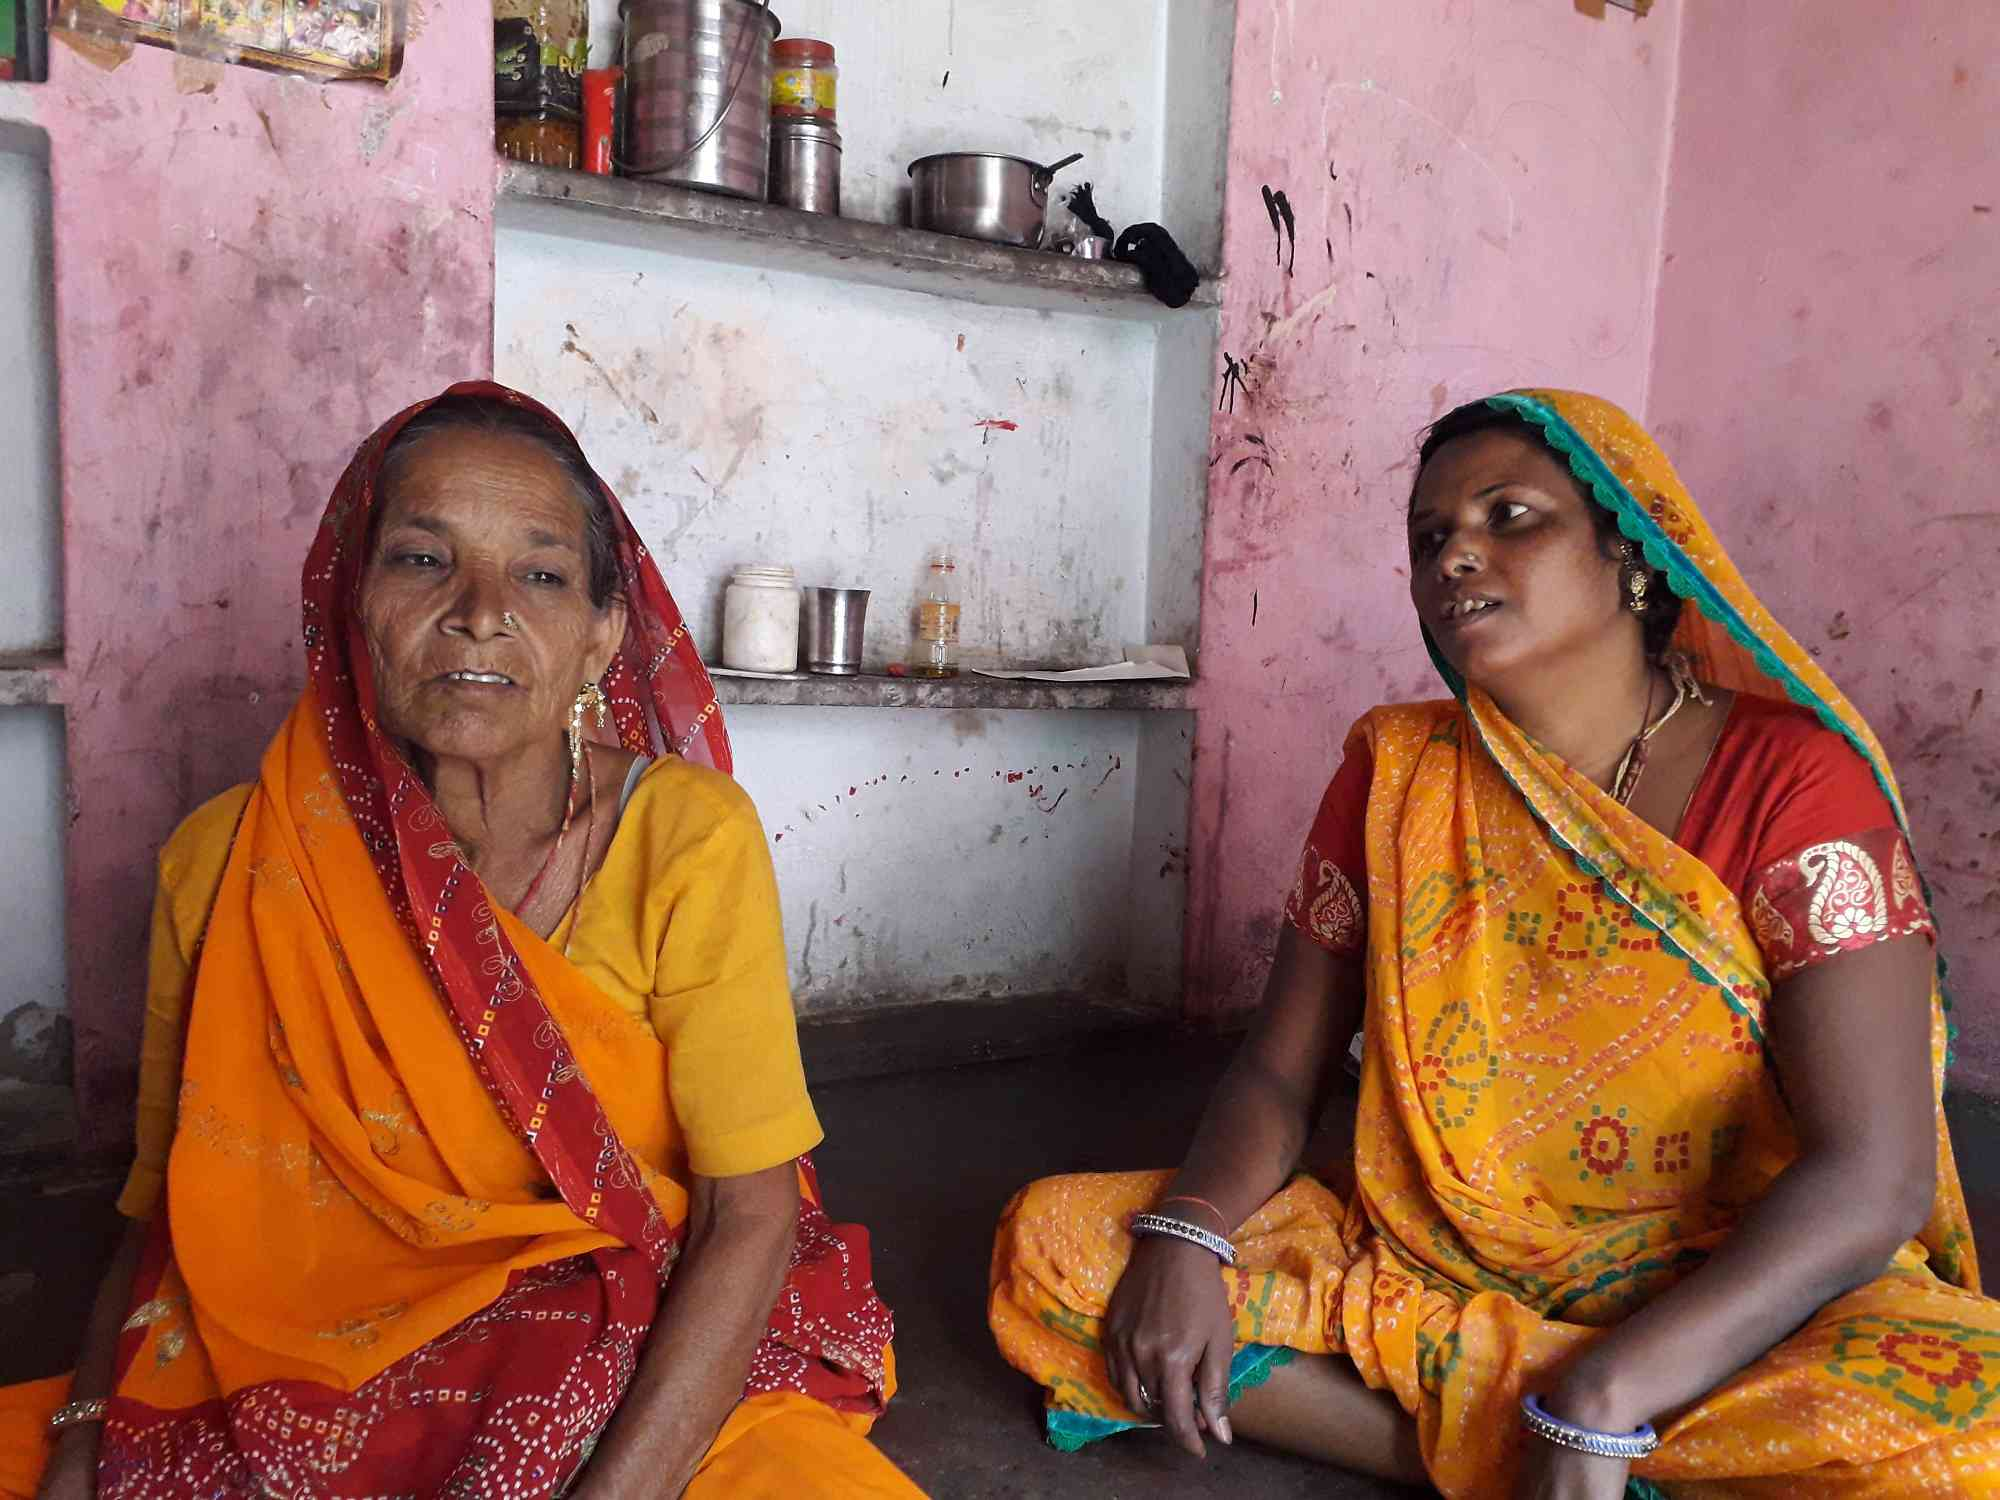 Minya Devi Lal (left) and her daughter-in-law Lali Devi at their home in Jaipur's Purani Basti. (Photo credit: Aarefa Johari).